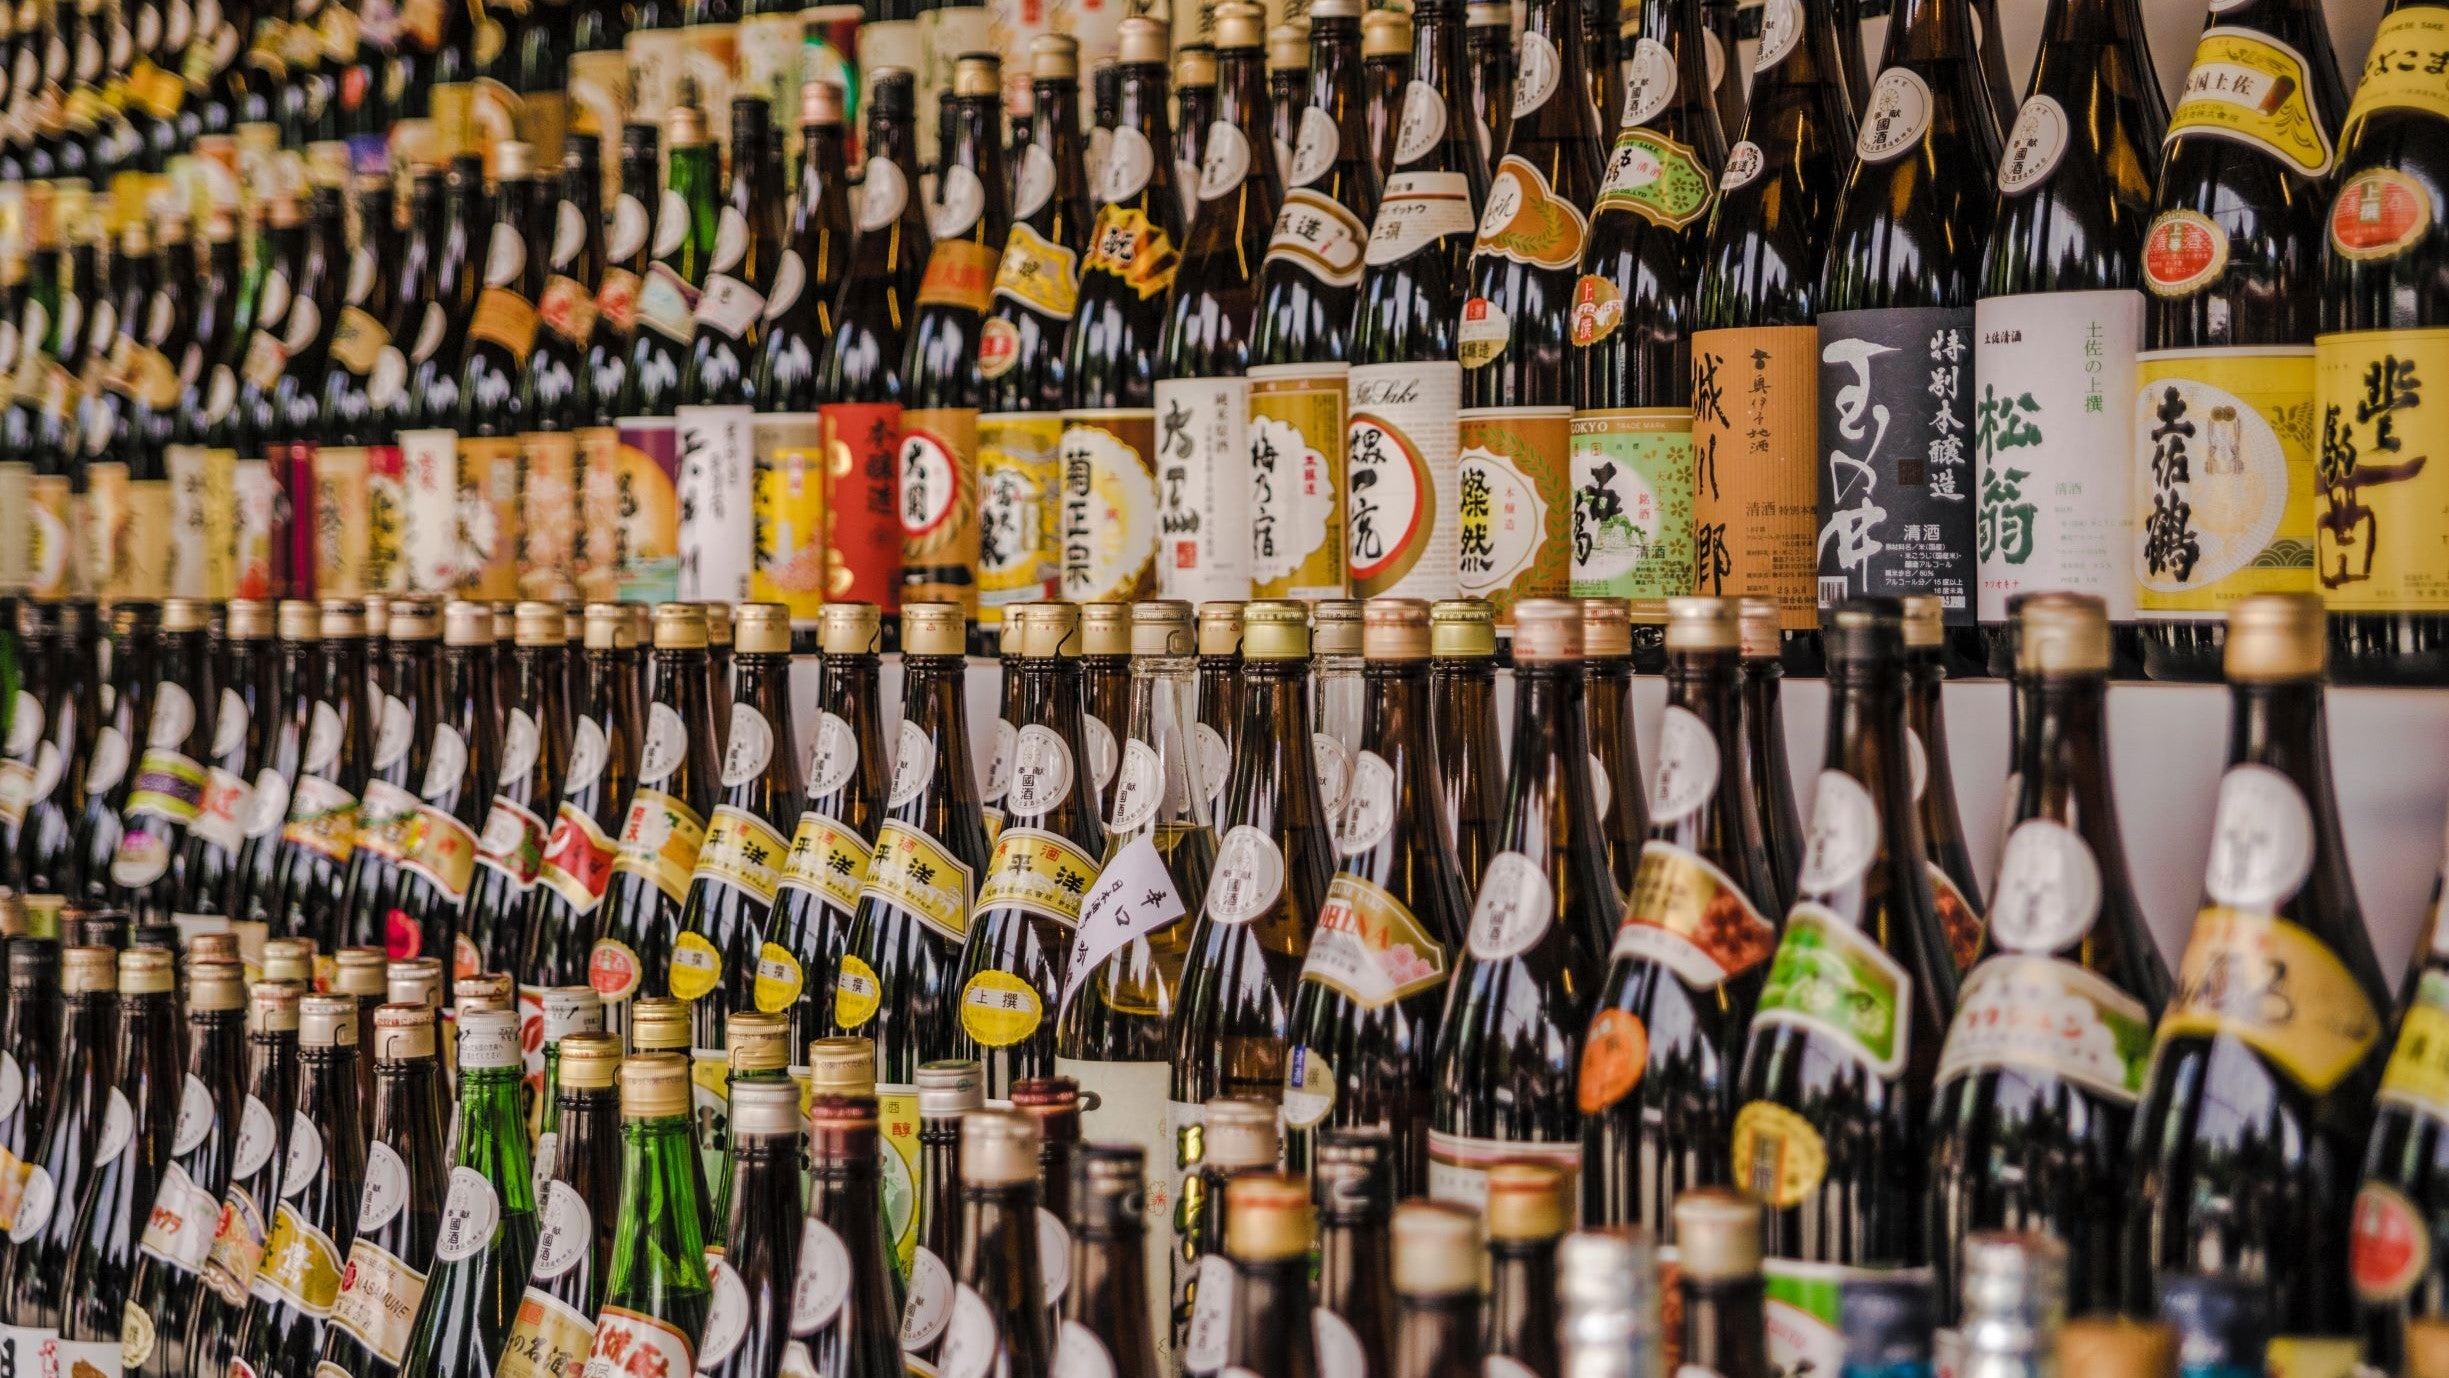 The proper way to store Sake